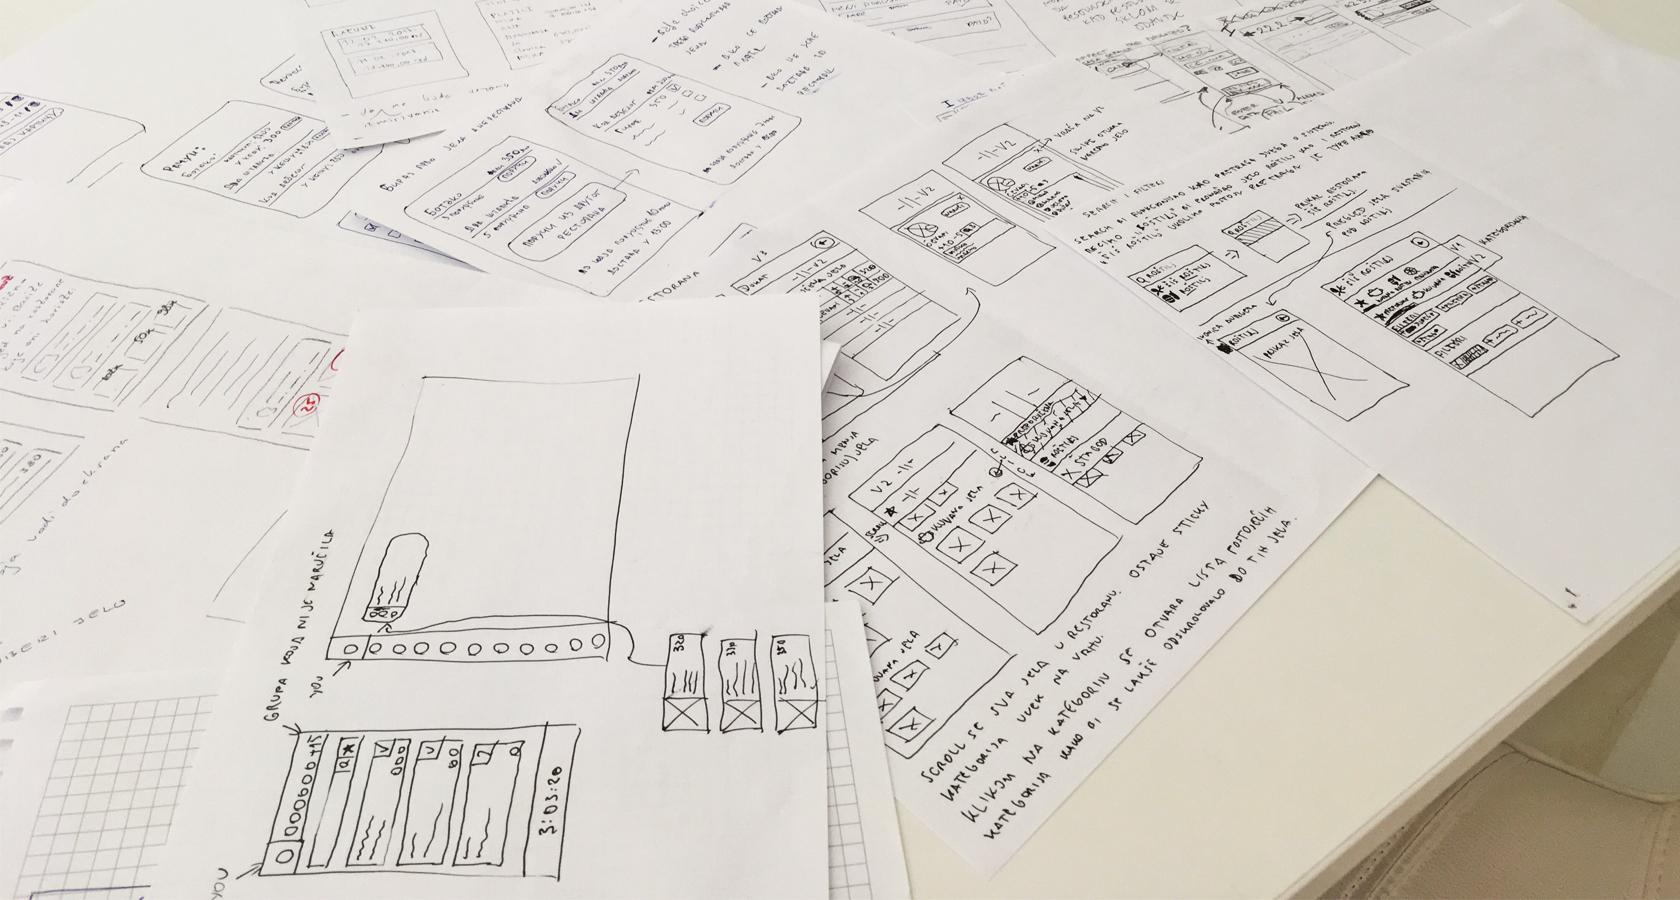 Everyone sketches as part of the Lean UX design process